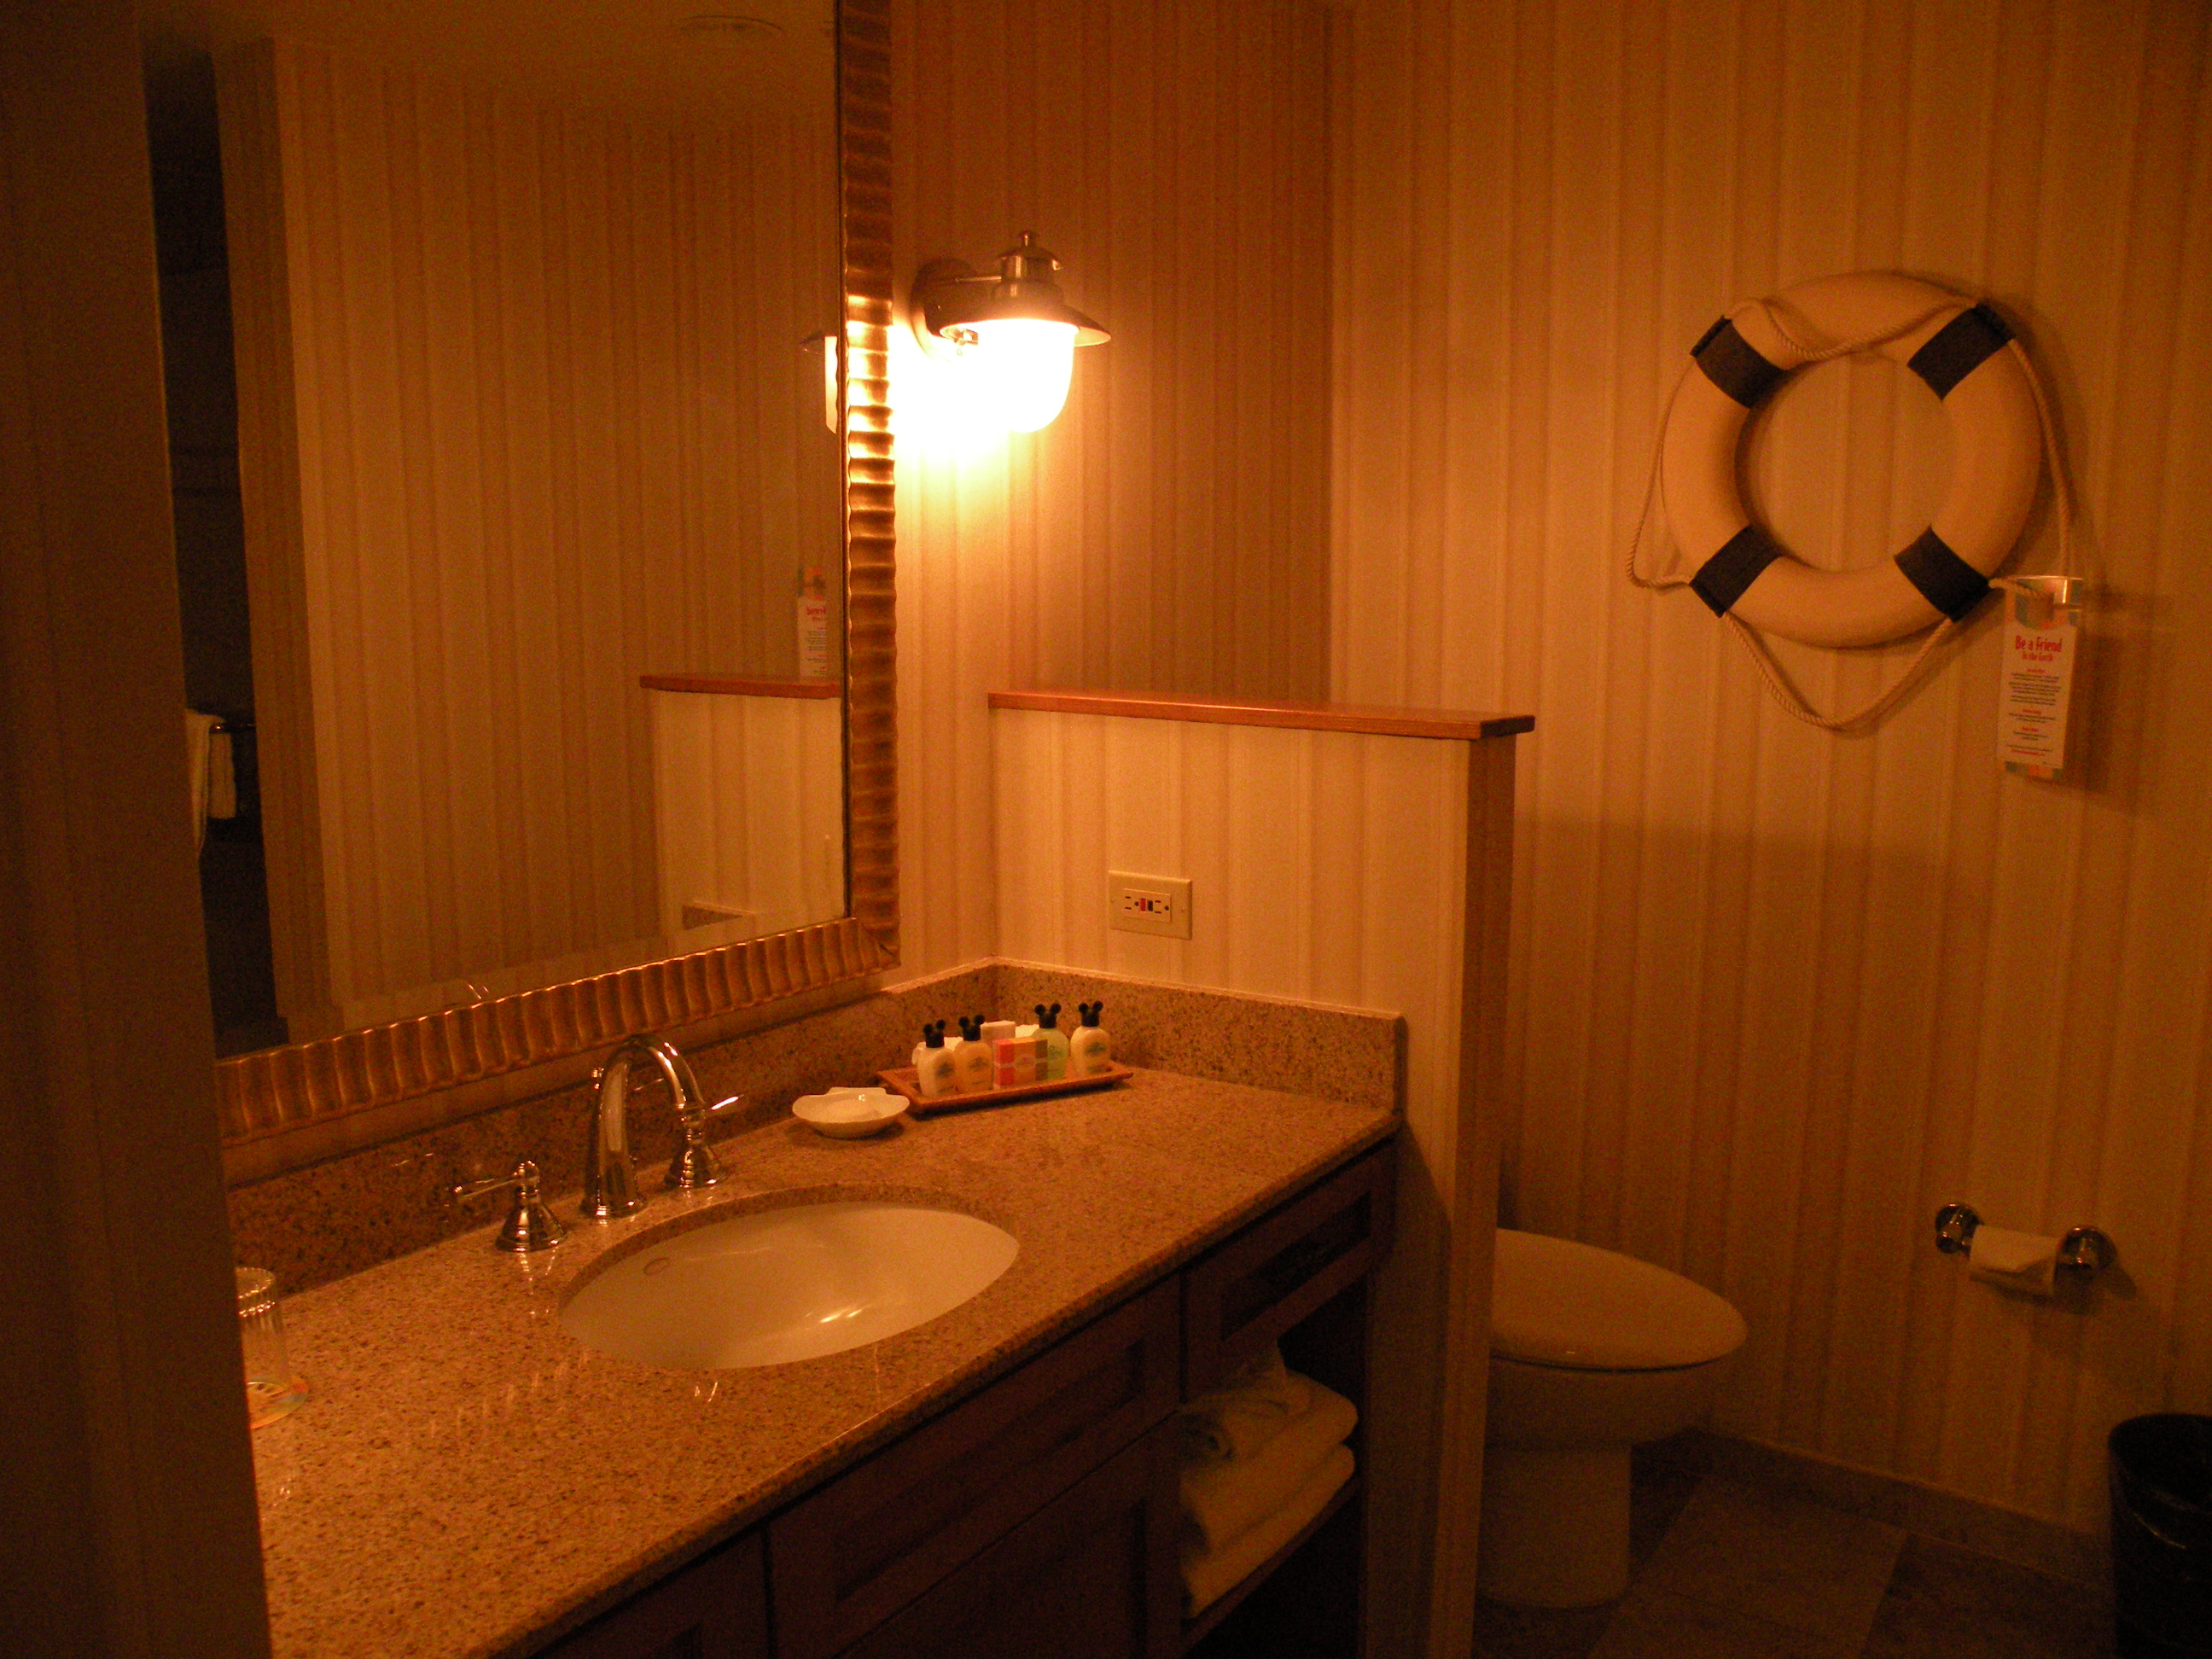 Bathroom #1 Counter and Toilet